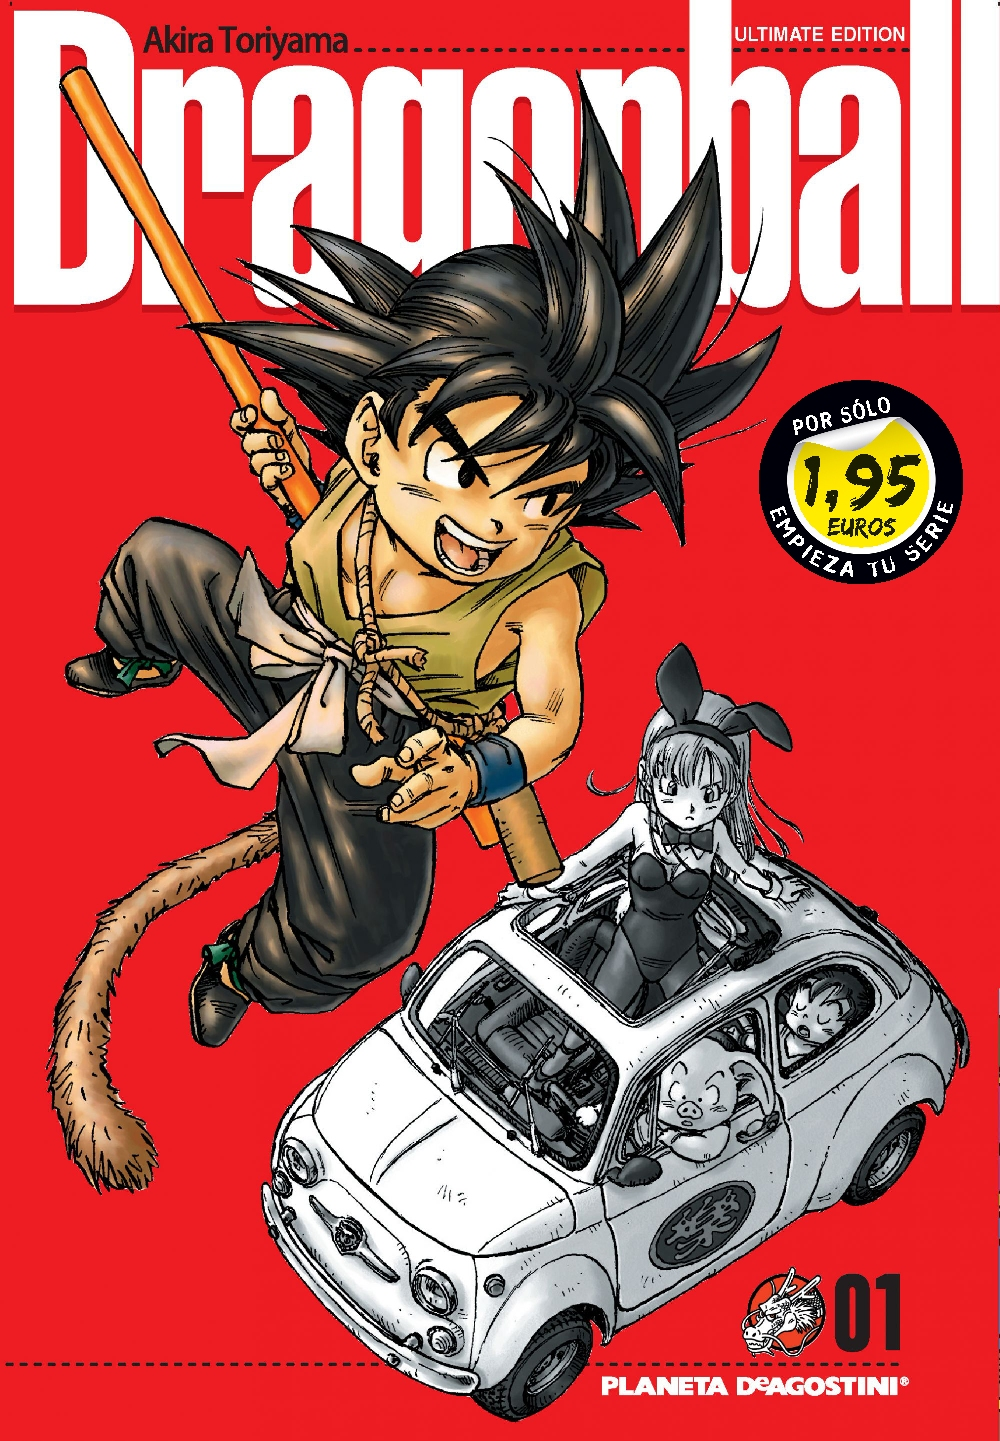 portada_dragon-ball-n-0134_1_95